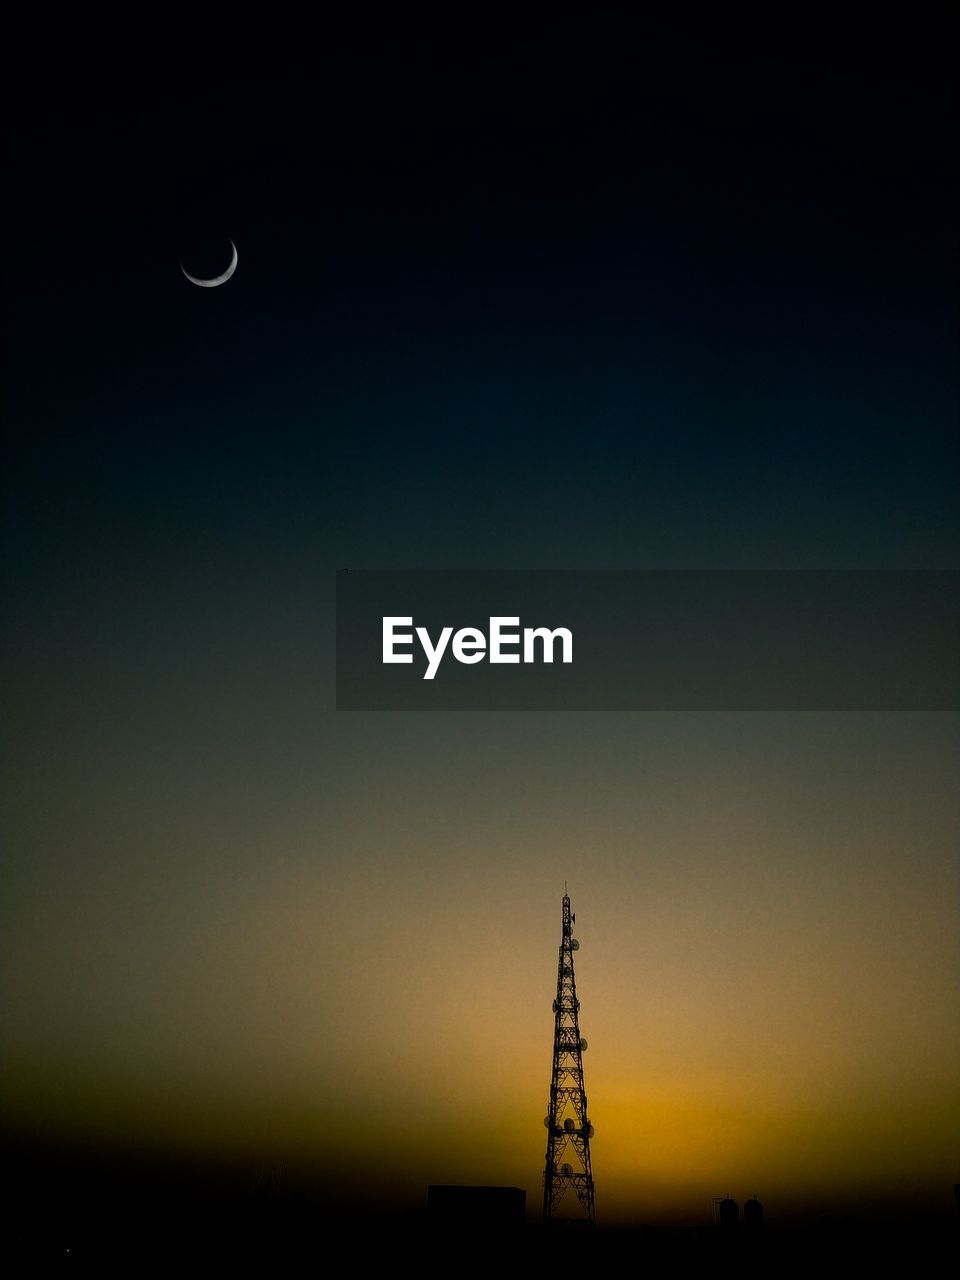 sky, silhouette, sunset, no people, scenics - nature, beauty in nature, nature, moon, copy space, architecture, tower, night, built structure, tranquility, outdoors, tranquil scene, clear sky, tall - high, dusk, global communications, spire, power supply